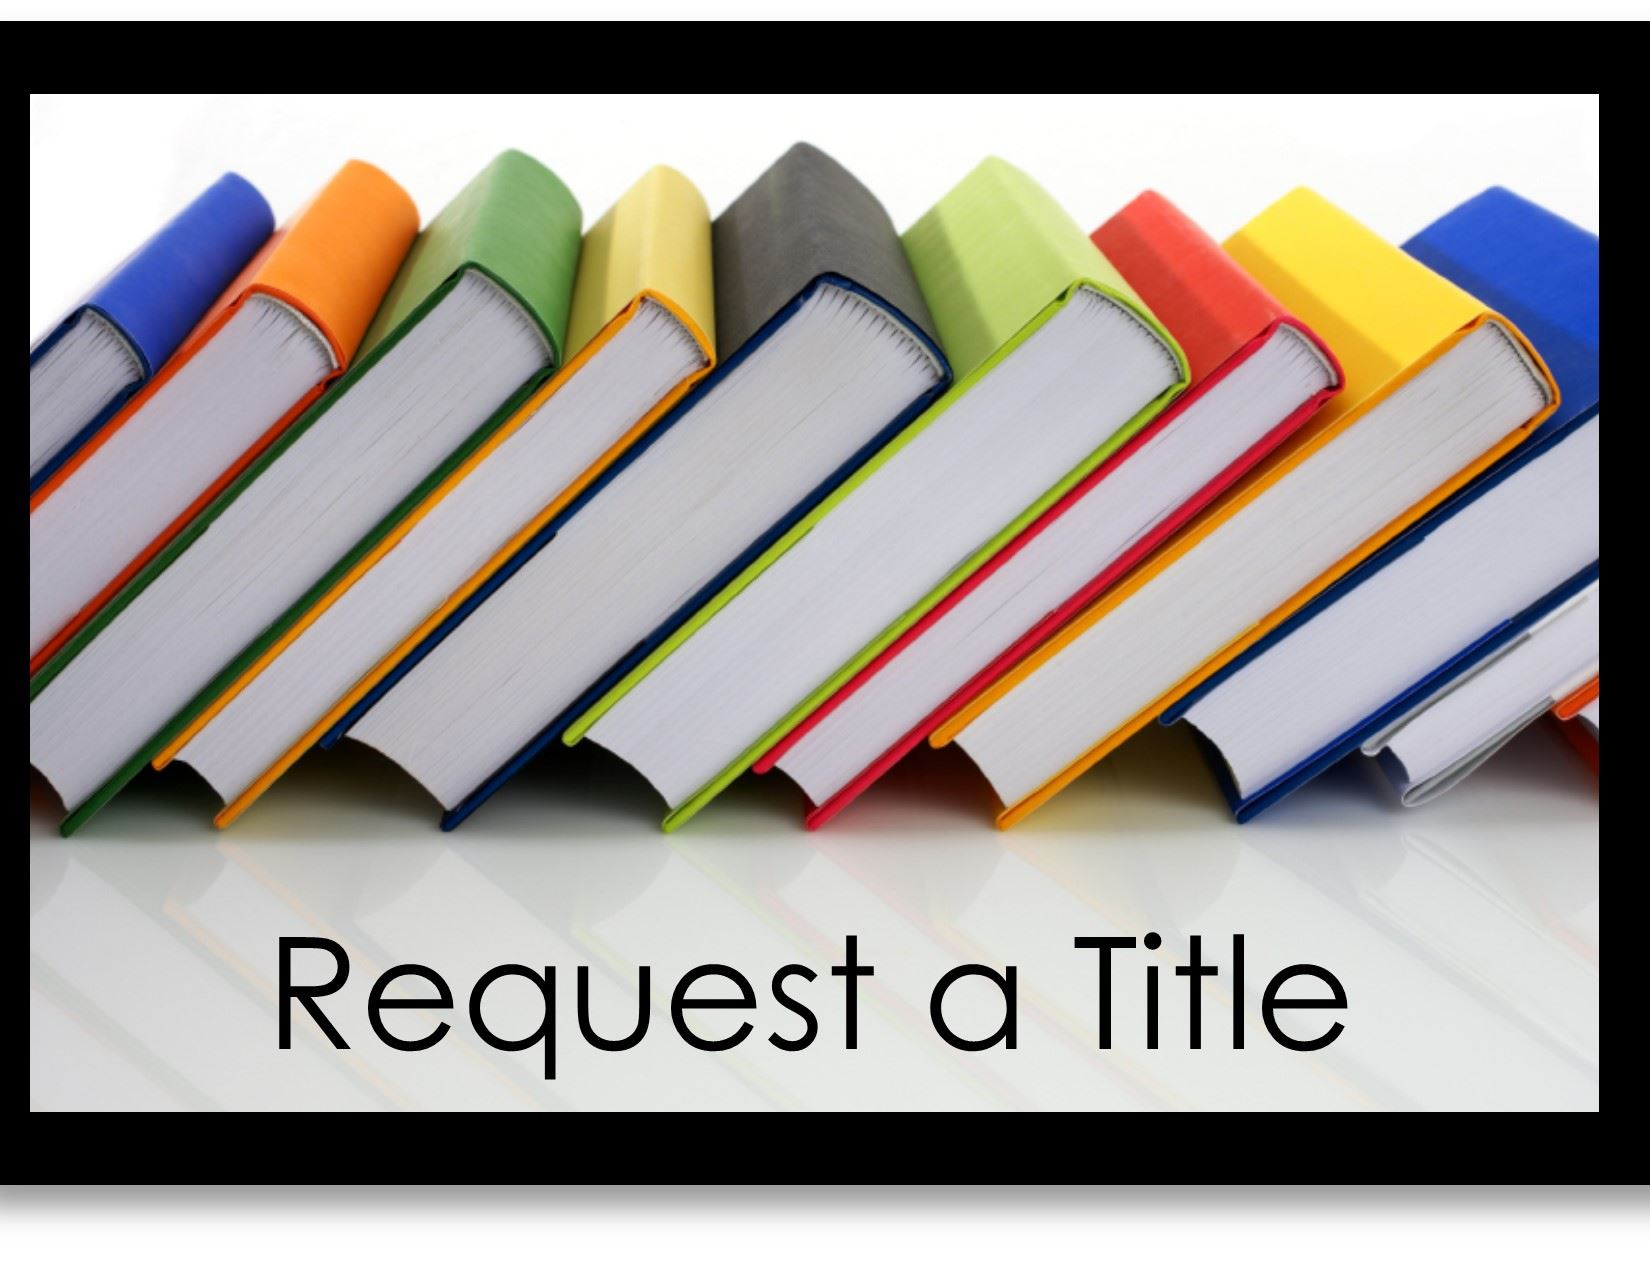 Request a Title with an image of books.